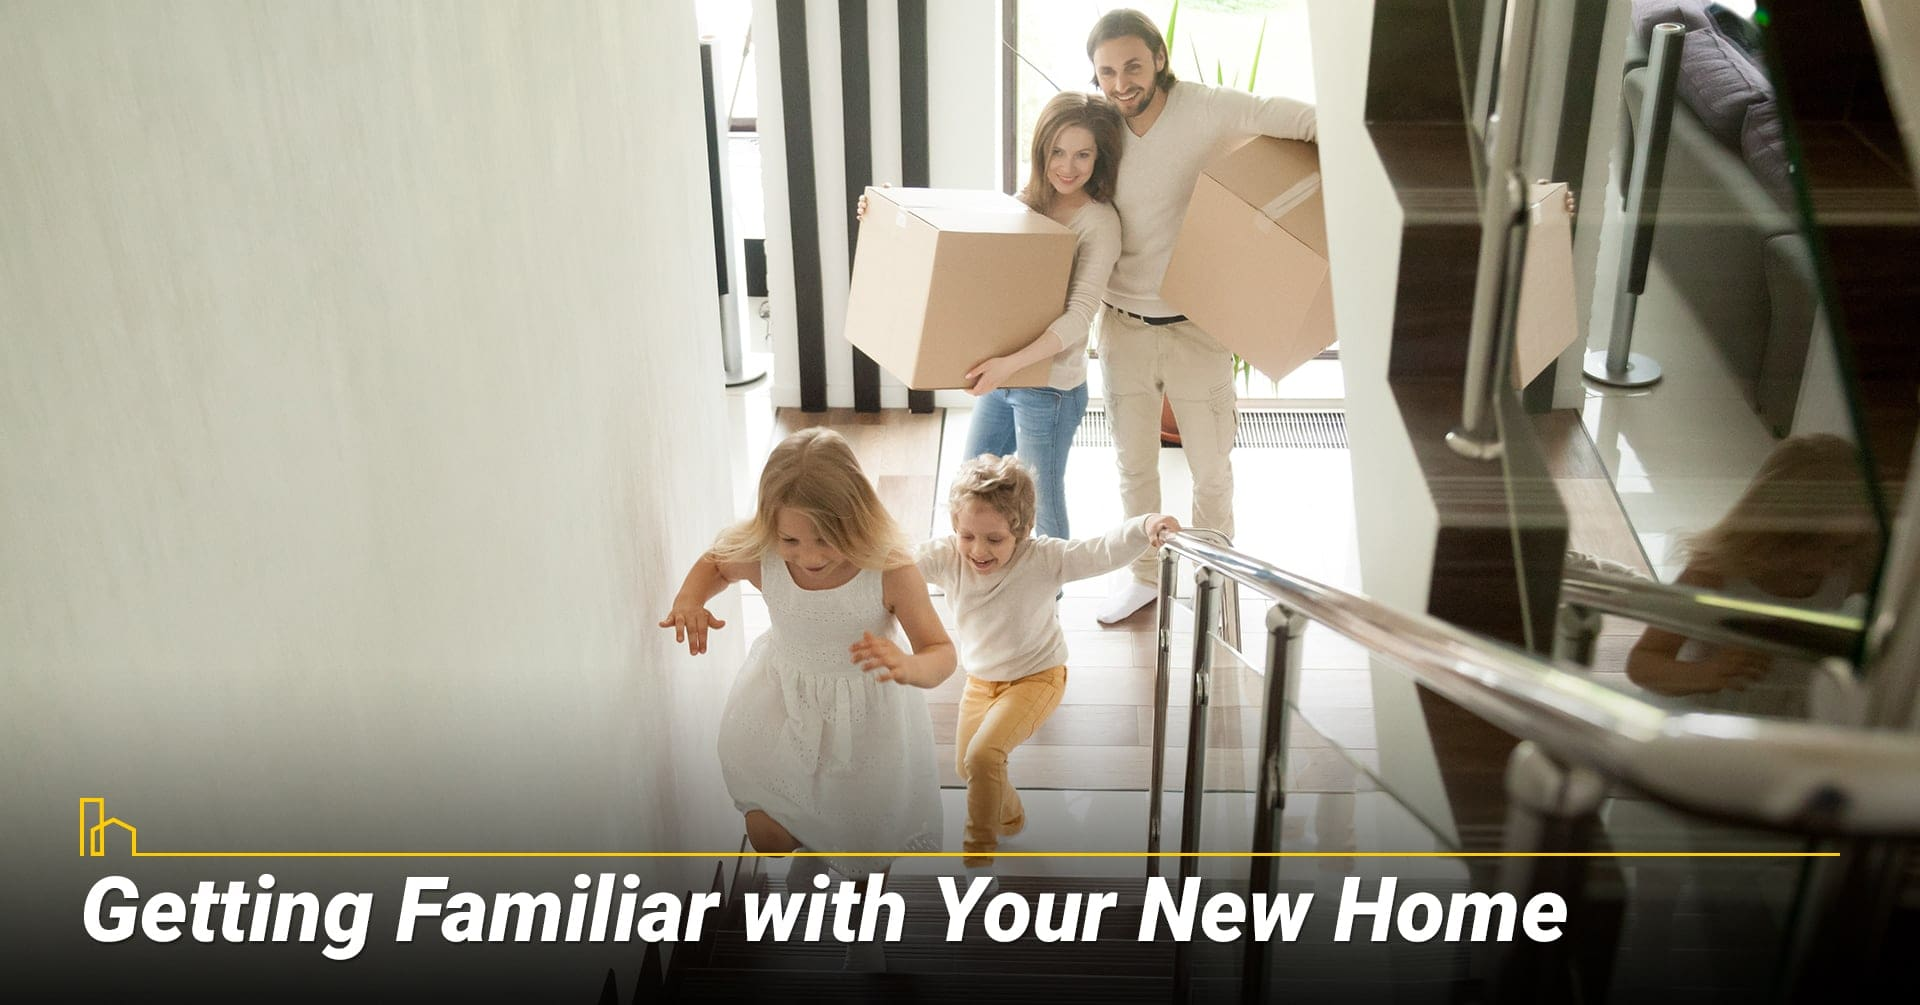 Getting Familiar with Your New Home, take a closer look at your new home